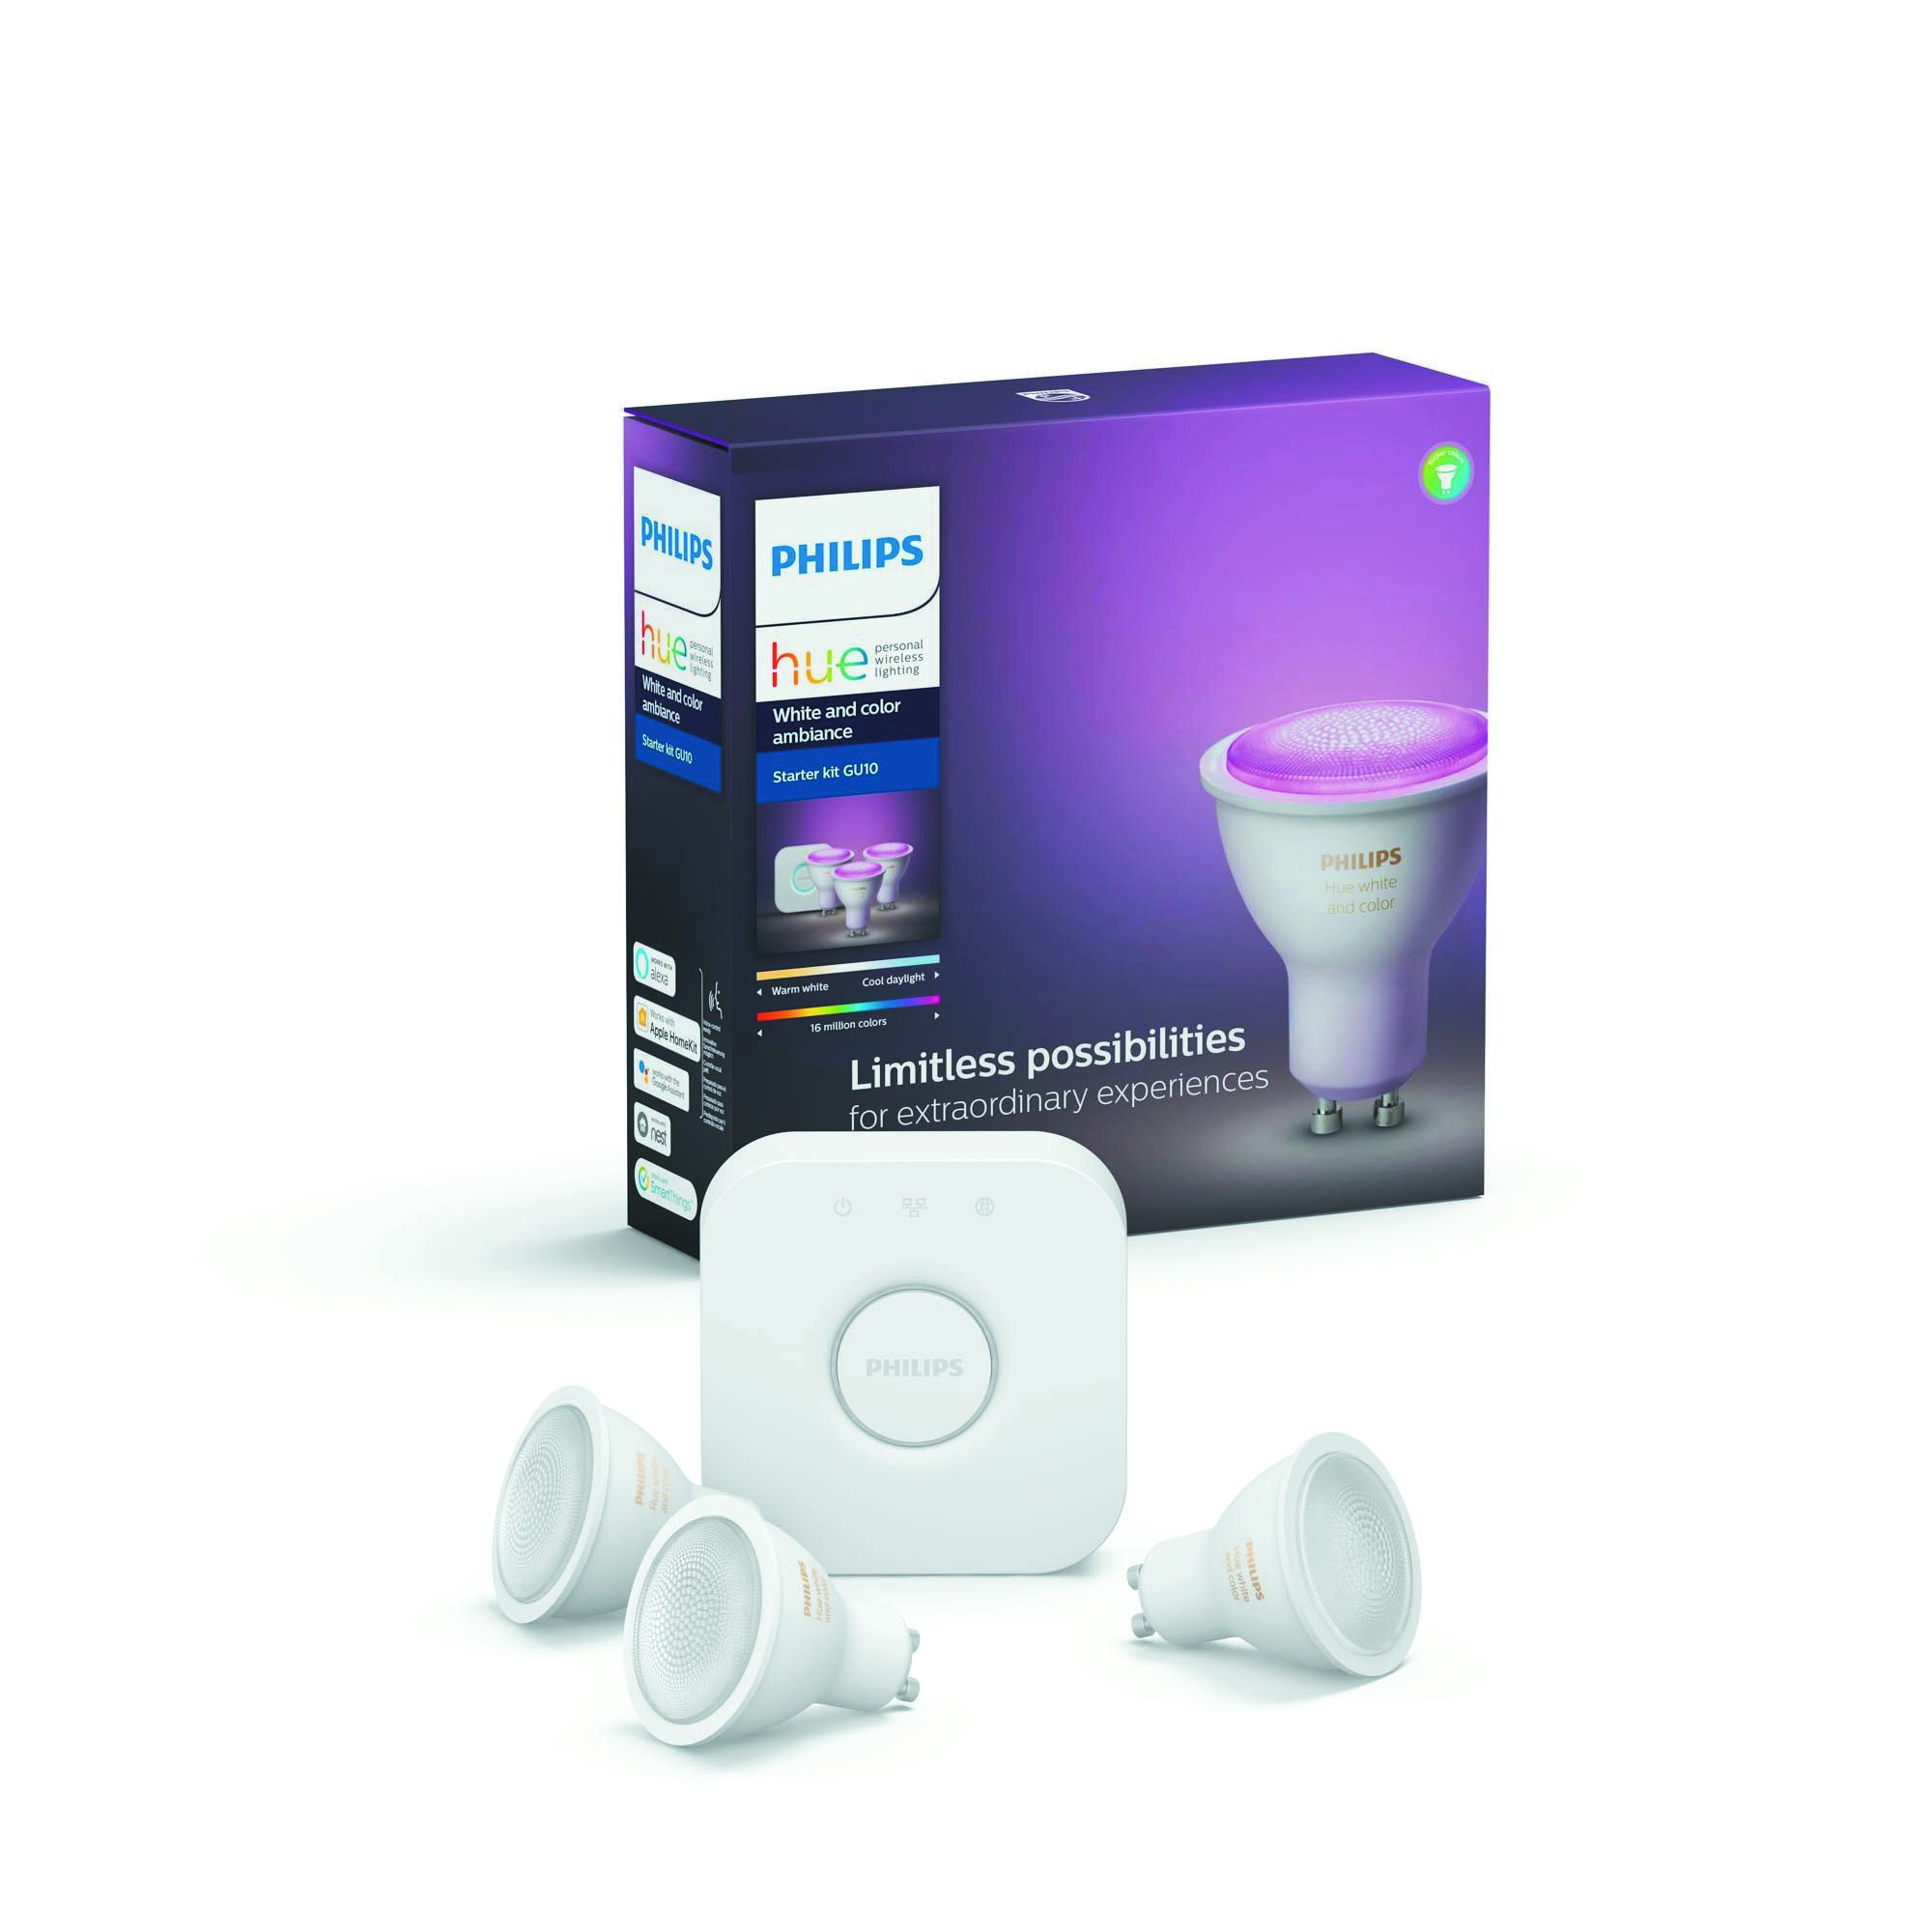 Philips Hue Bluetooth 3x LED žárovky GU10 5,7W 250lm 2200-2700K + bridge + switch 8718699629274